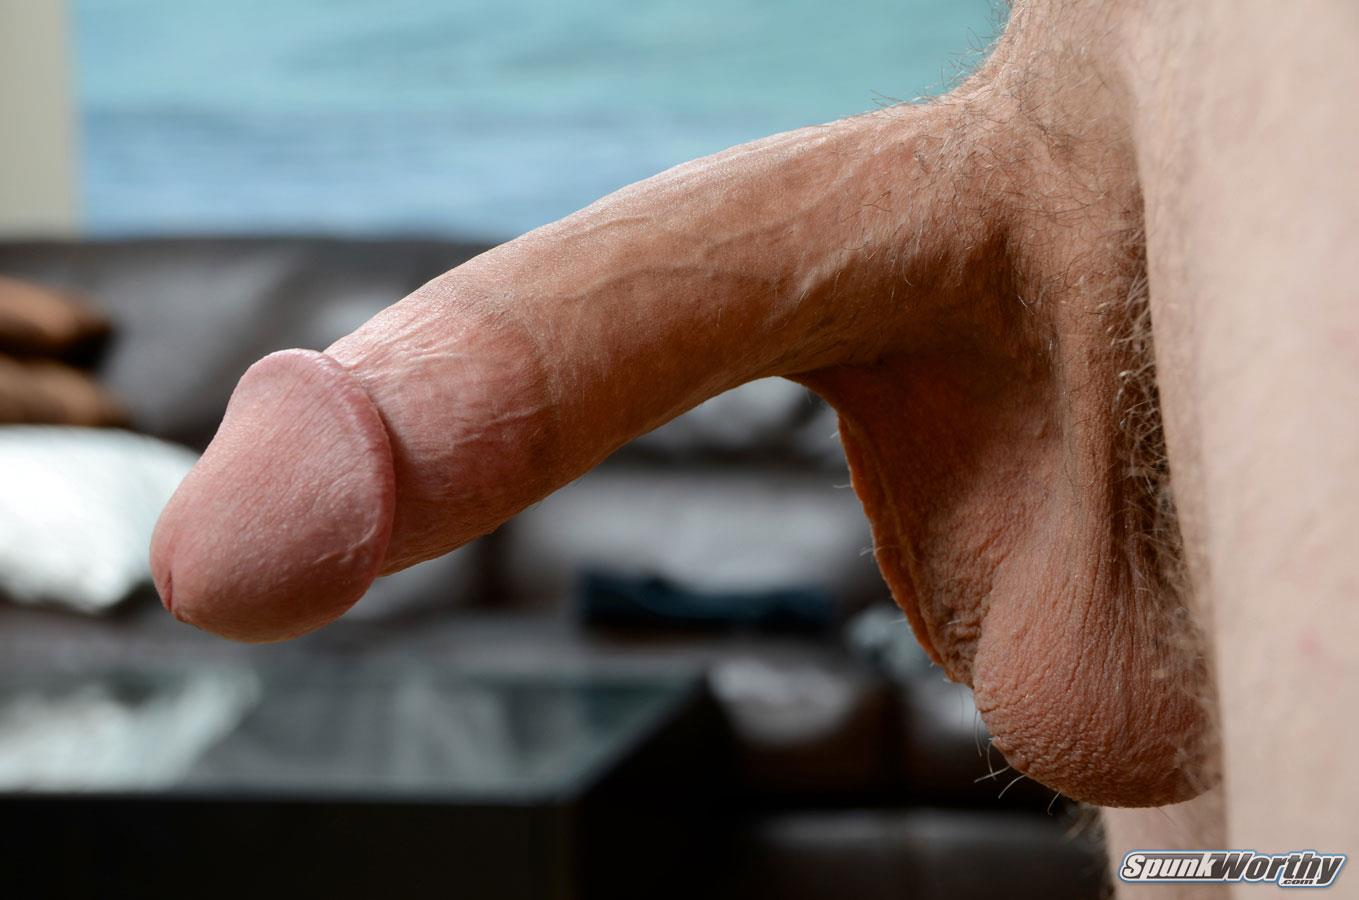 SpunkWorthy-Dane-Tatted-Marine-Masturbating-8-Inch-Cock-Amateur-Gay-Porn-09 Amateur Straight Tatted Marine Jerking His Big 9